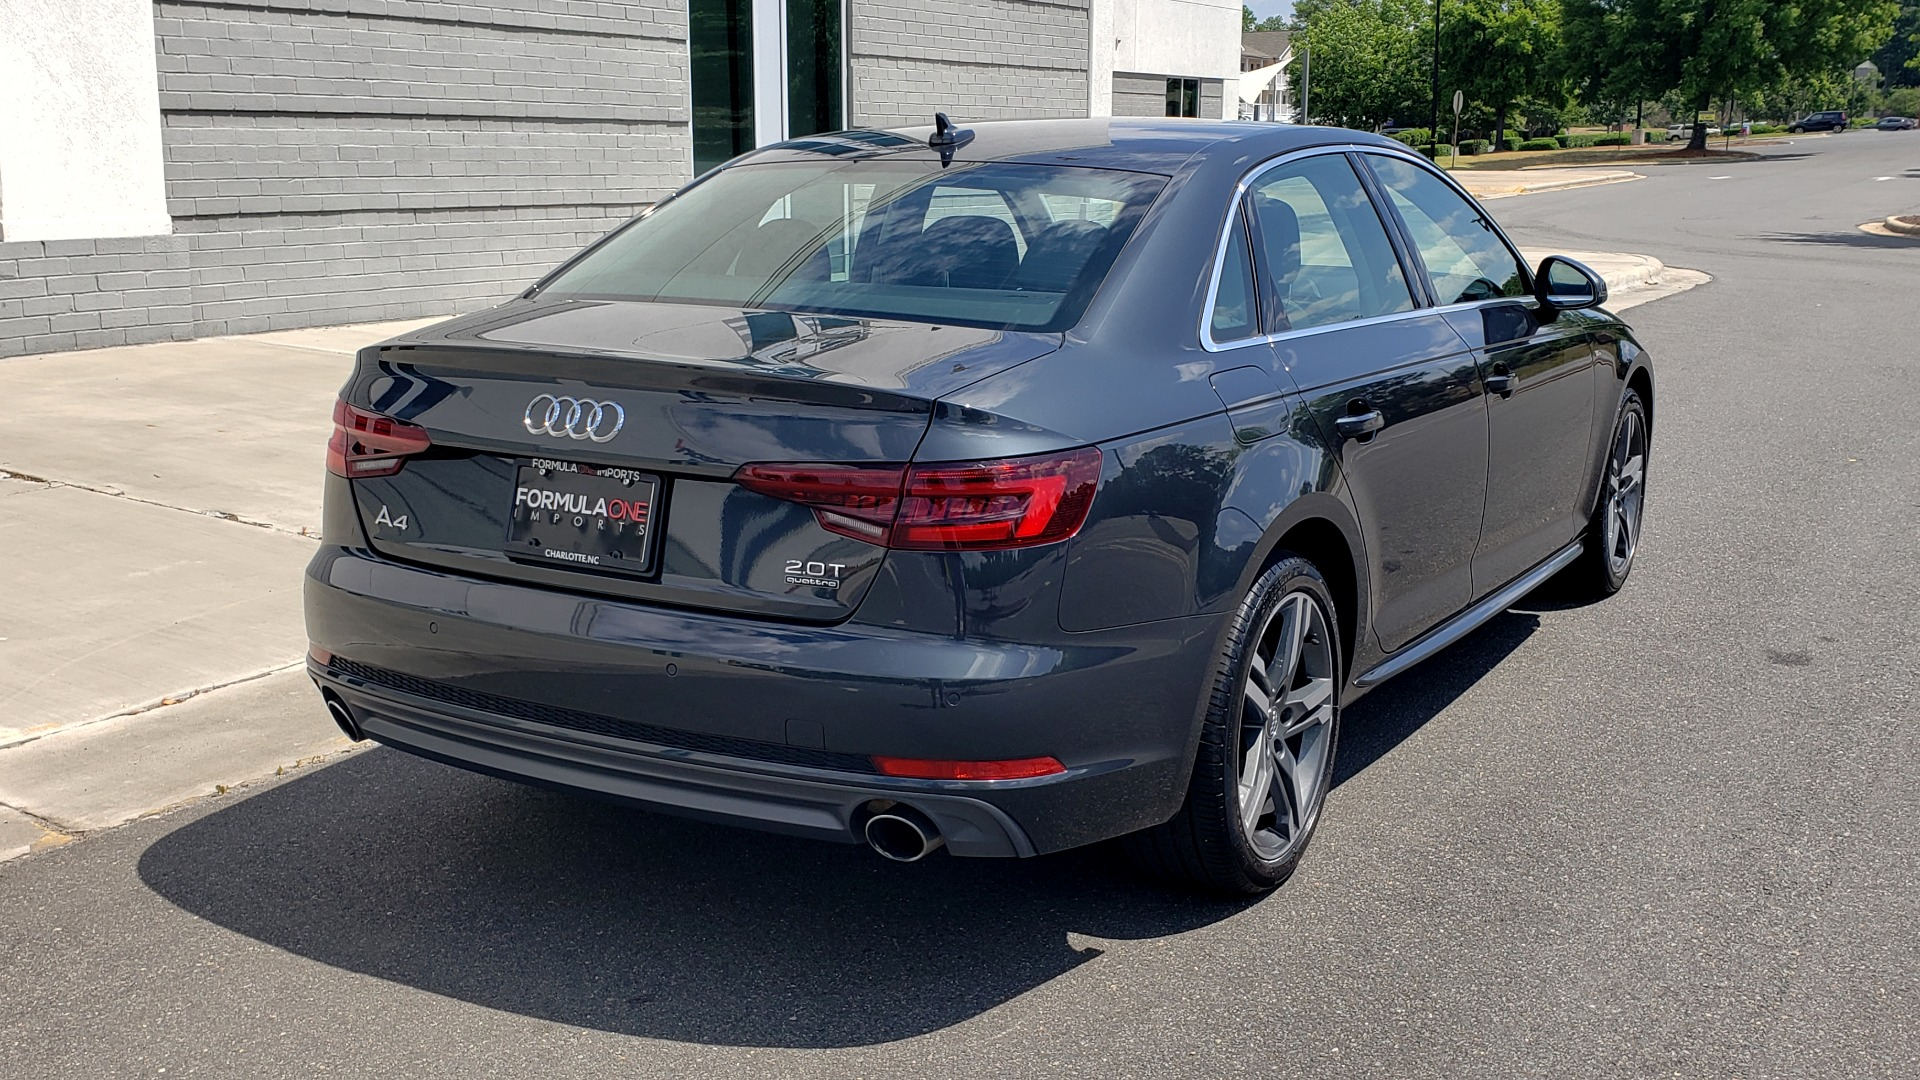 Used 2018 Audi A4 TECH PREMIUM PLUS / NAV / B&O SND / SUNROOF / CLD WTHR / REARVIEW for sale $28,595 at Formula Imports in Charlotte NC 28227 2